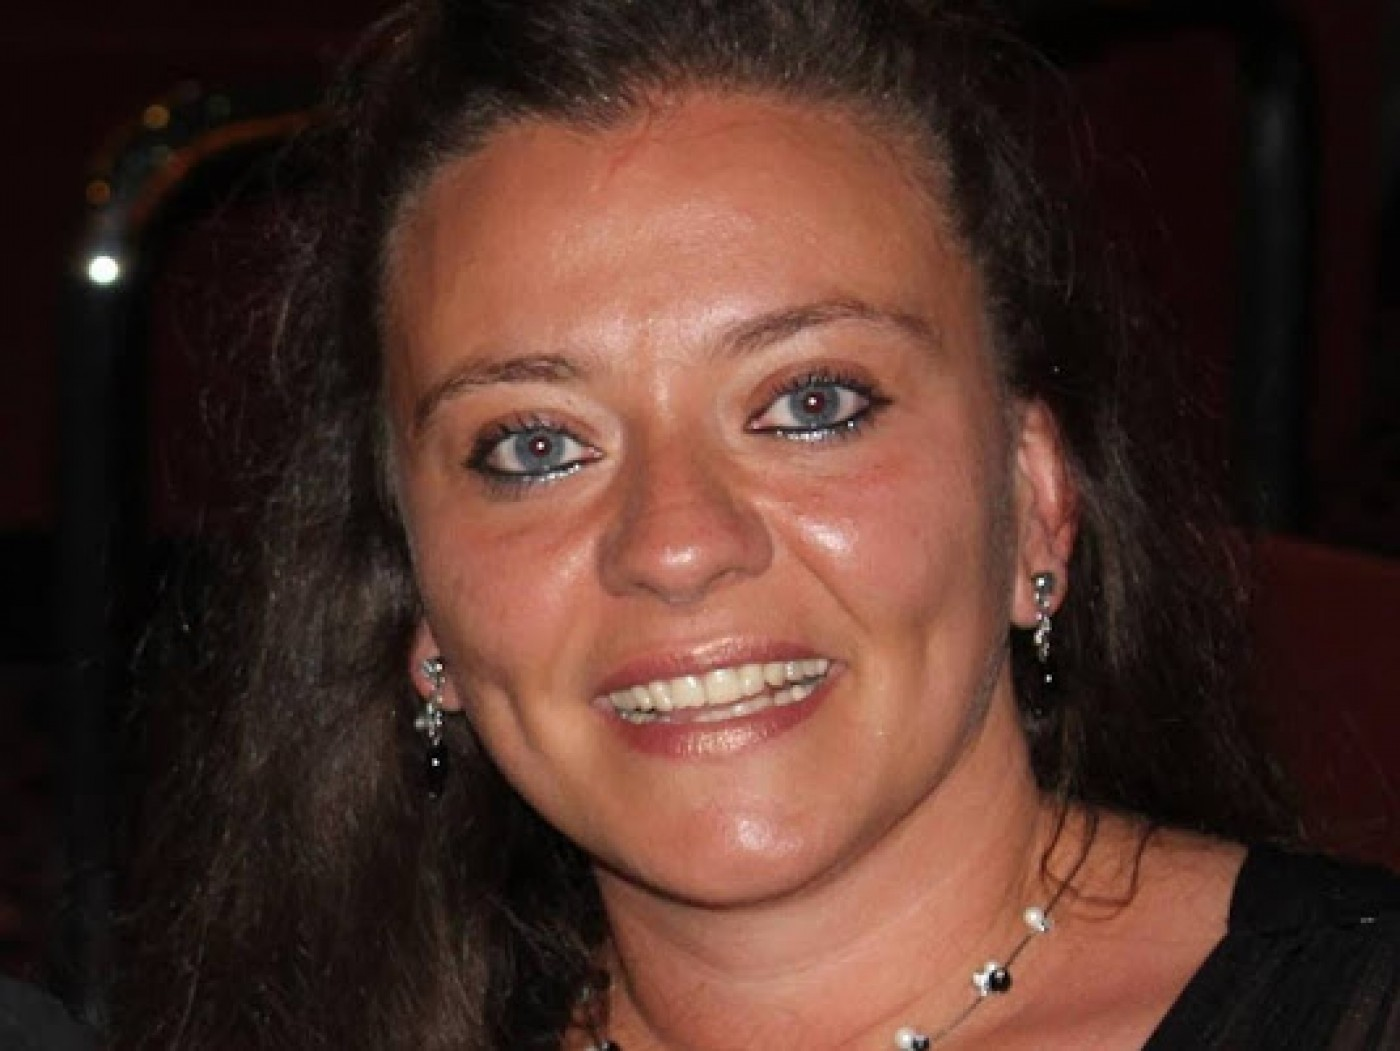 Loredana Casola, hypnotherapist, life coach and health practitioner serving Murcia and Alicante